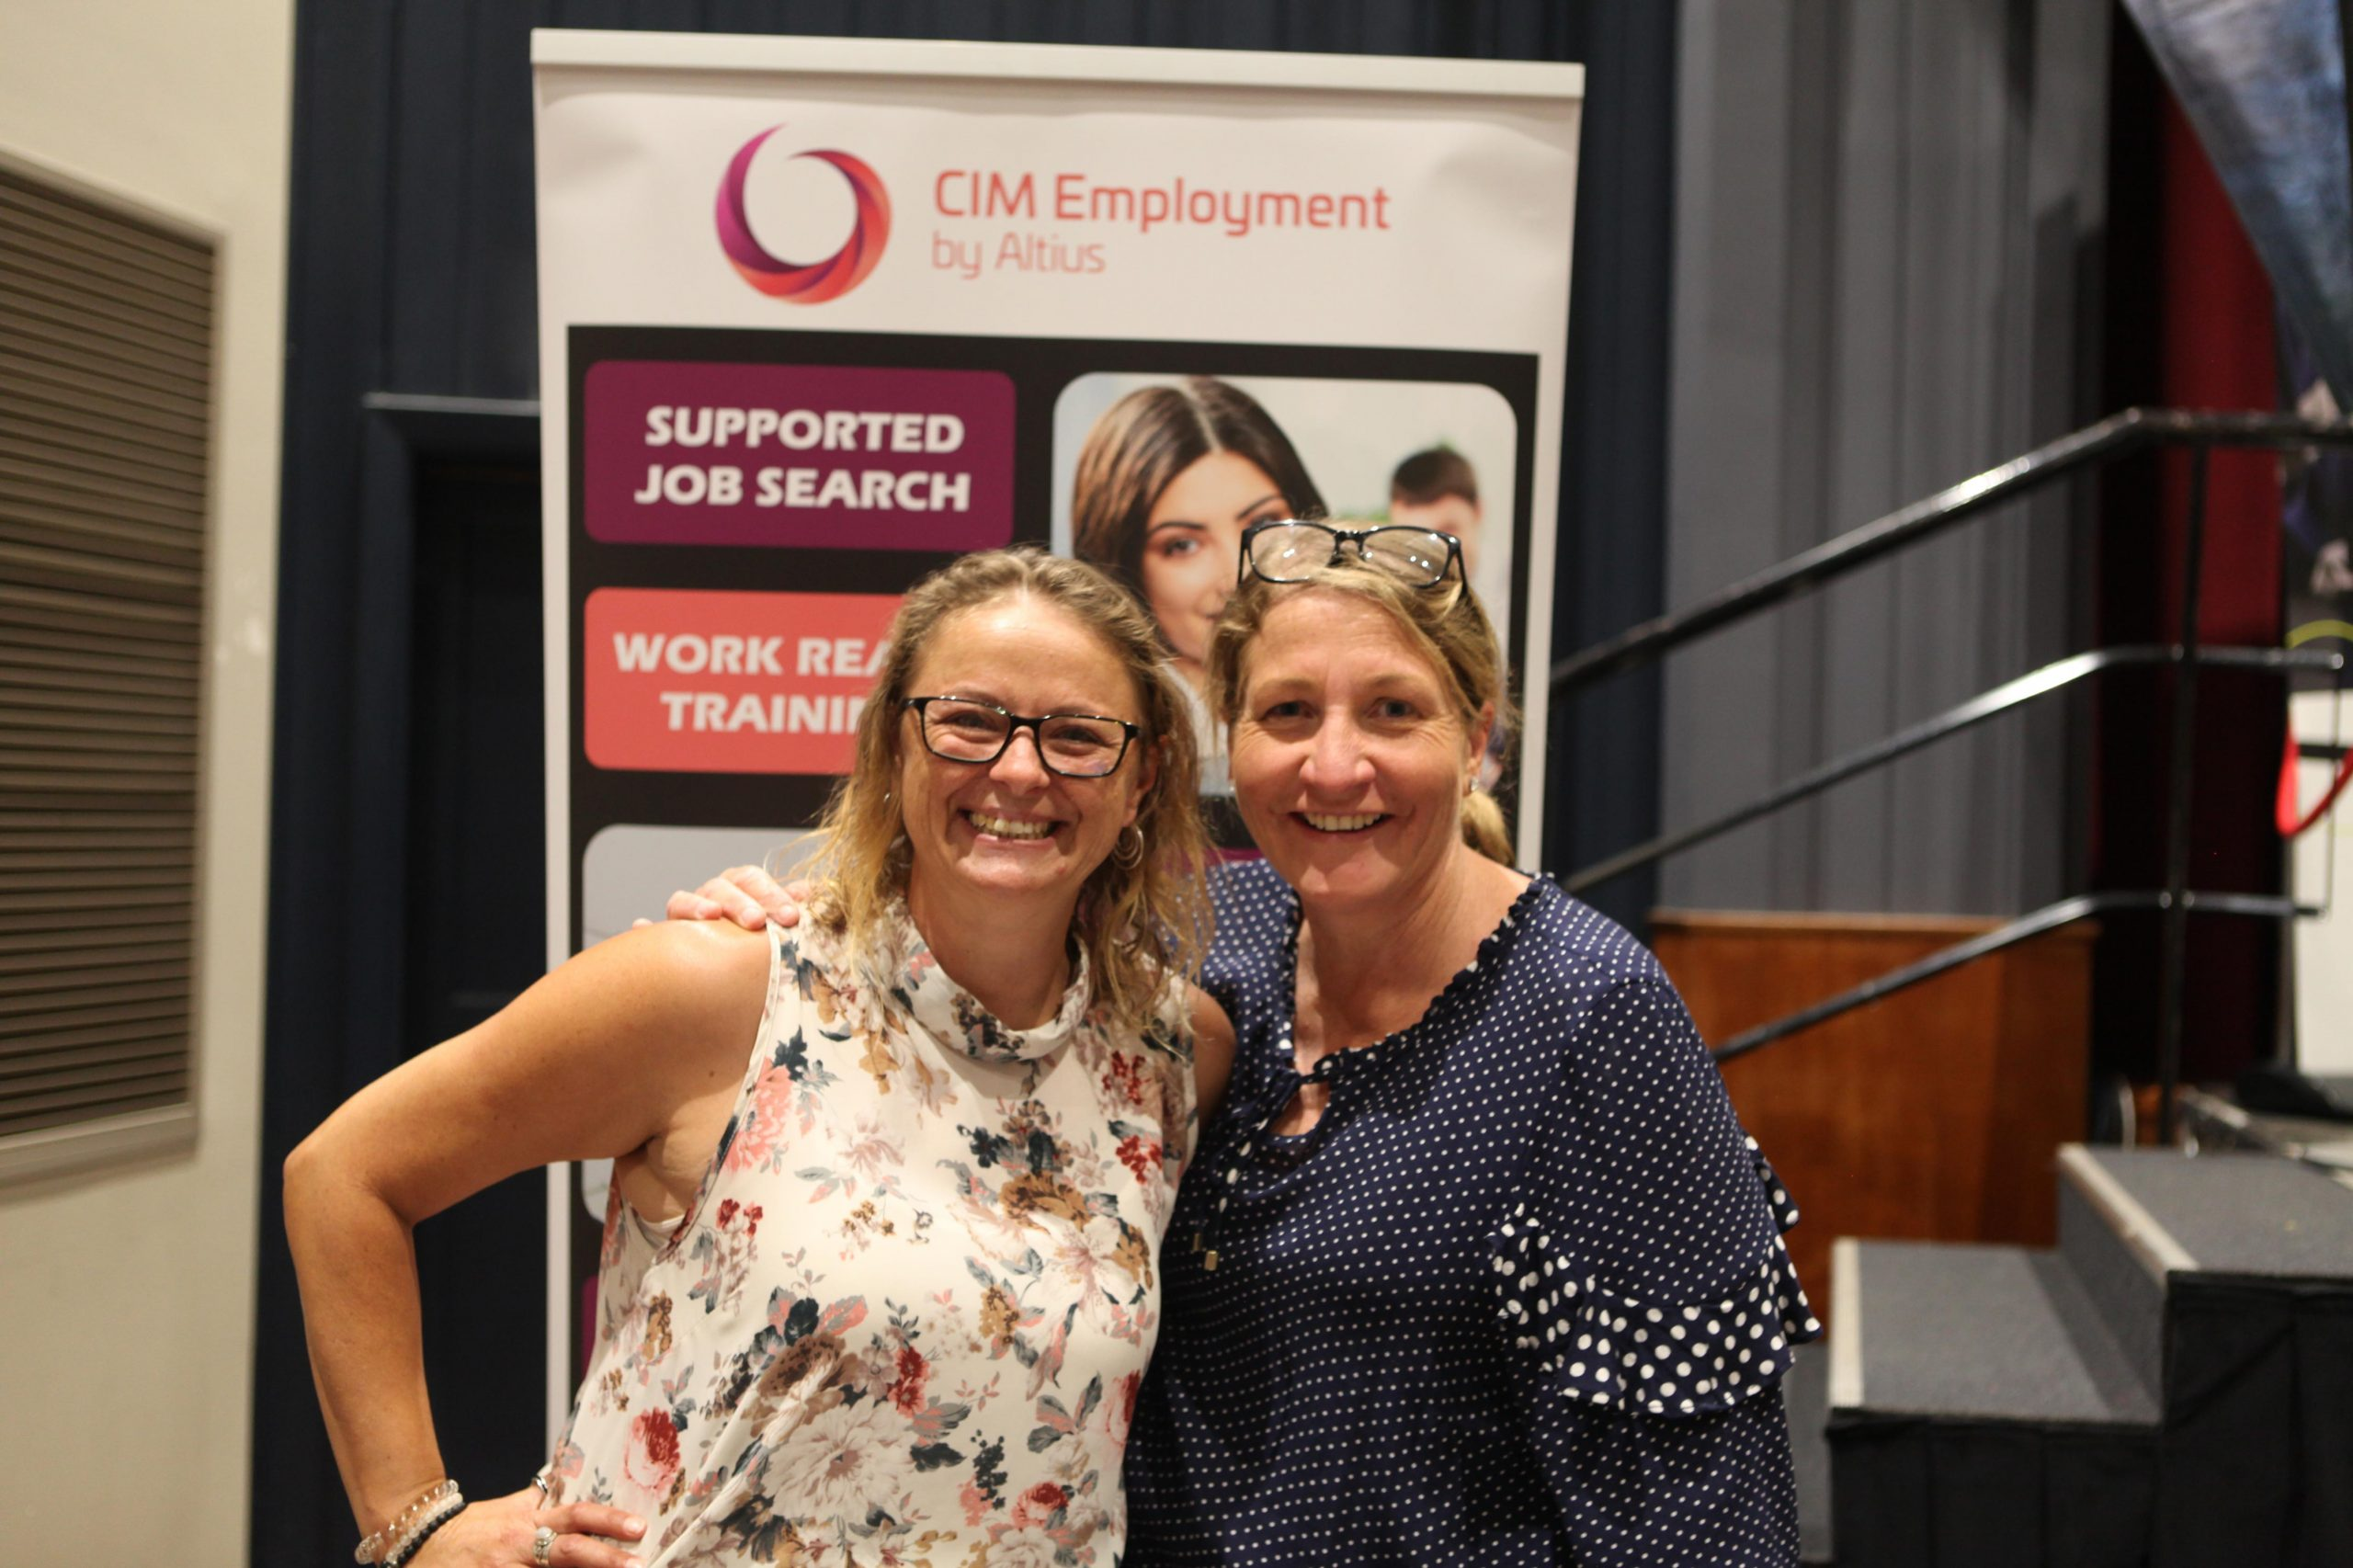 Peta-Anne Payne and Emma Rose of CIM Employment.